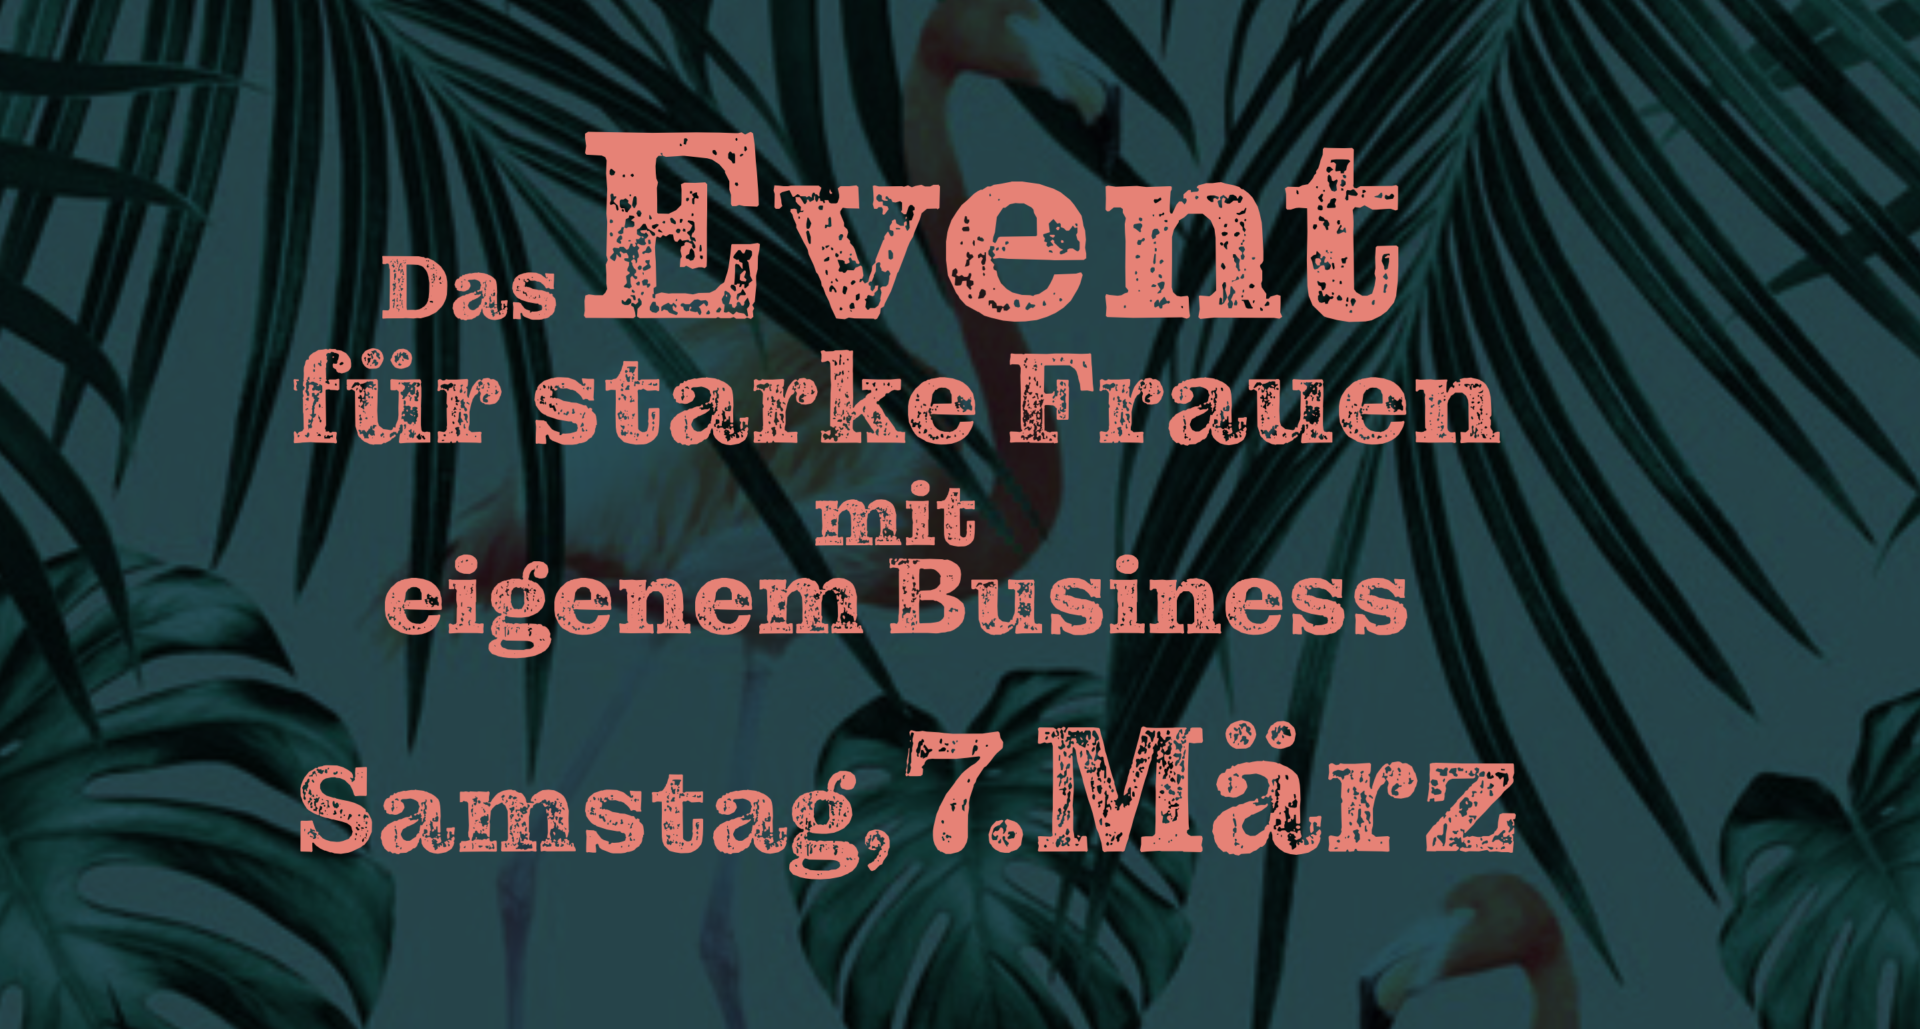 Celebrate Yourself – Das Event für starke Frauen mit eigenem Business! 2